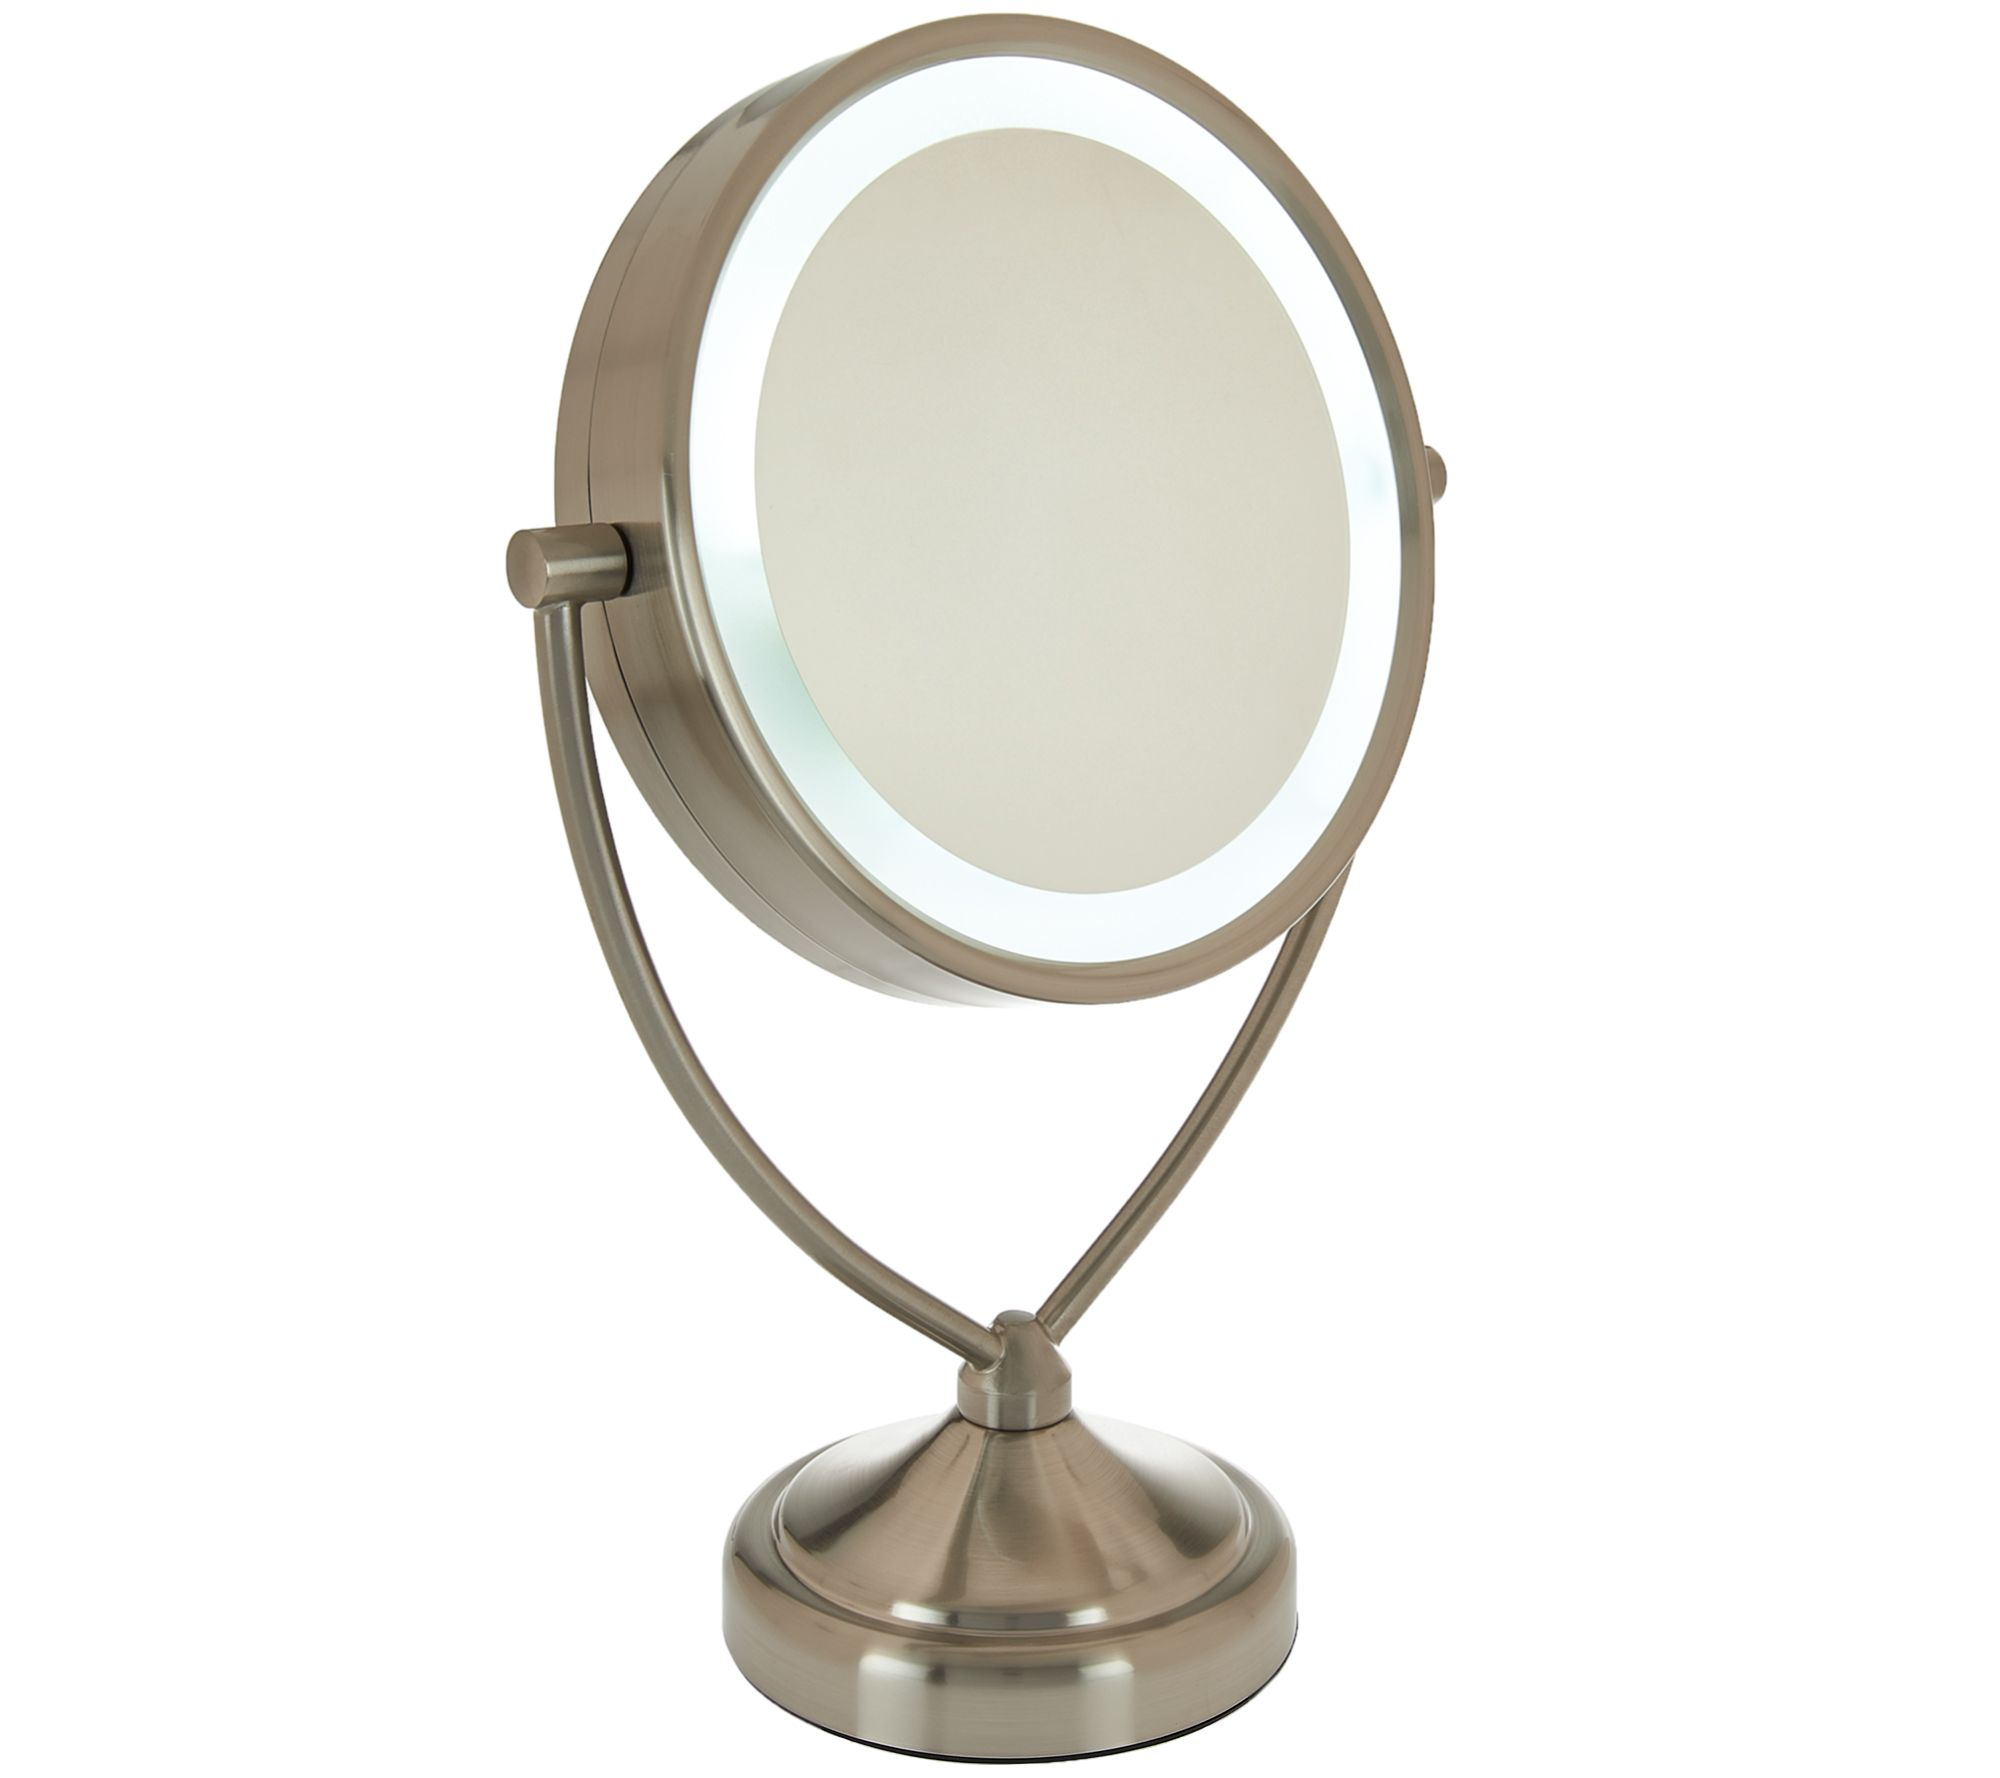 Conair 10x1x magnification lighted mirror page 1 qvc mozeypictures Image collections